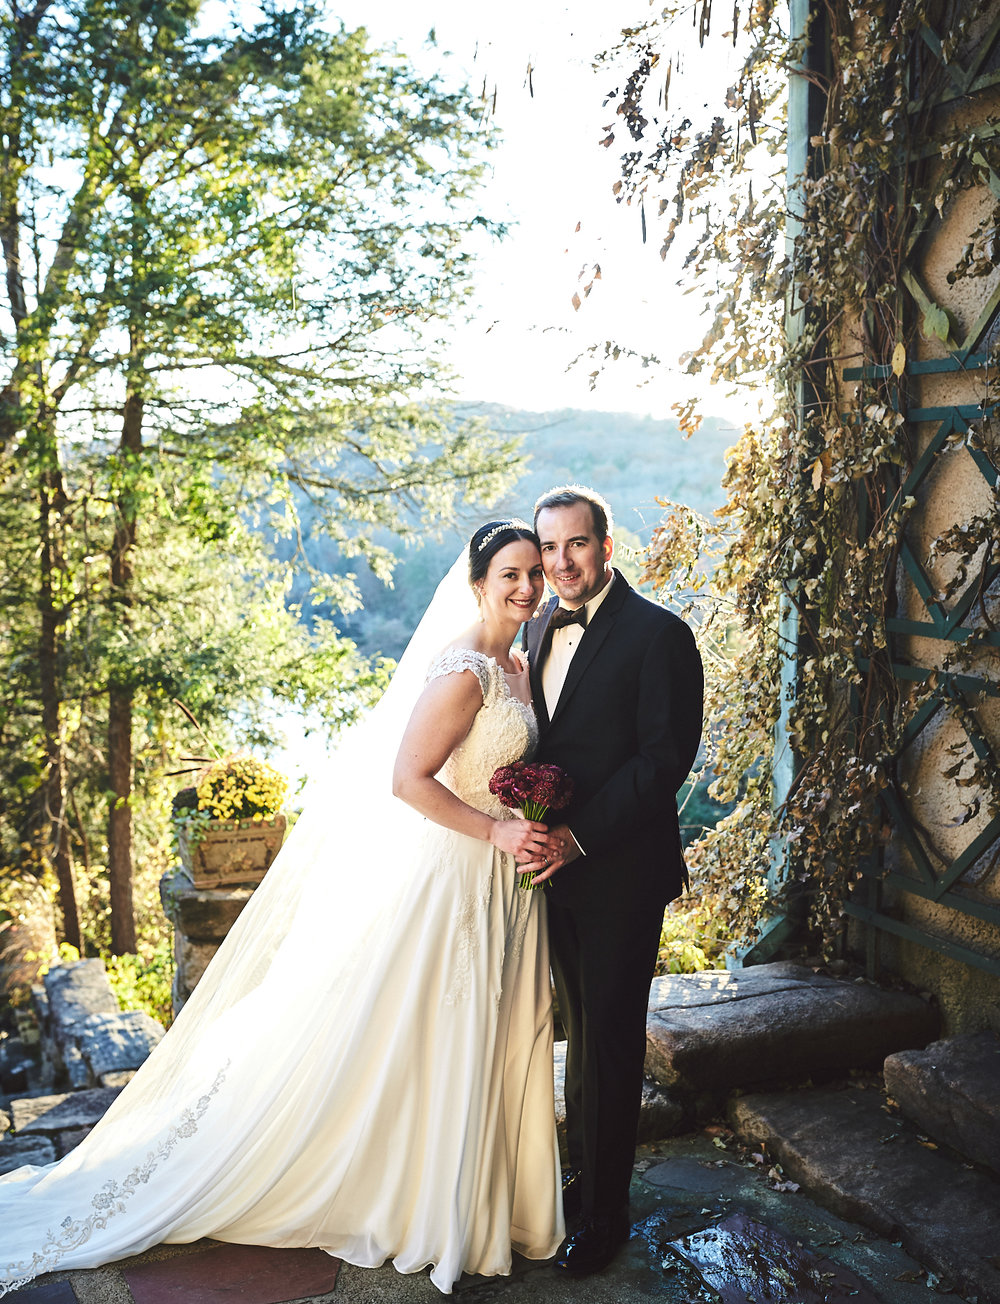 181110_ArrowParkFallWeddingPhotography_NYWeddingPhotographer_By_BriJohnsonWeddings_0079.jpg